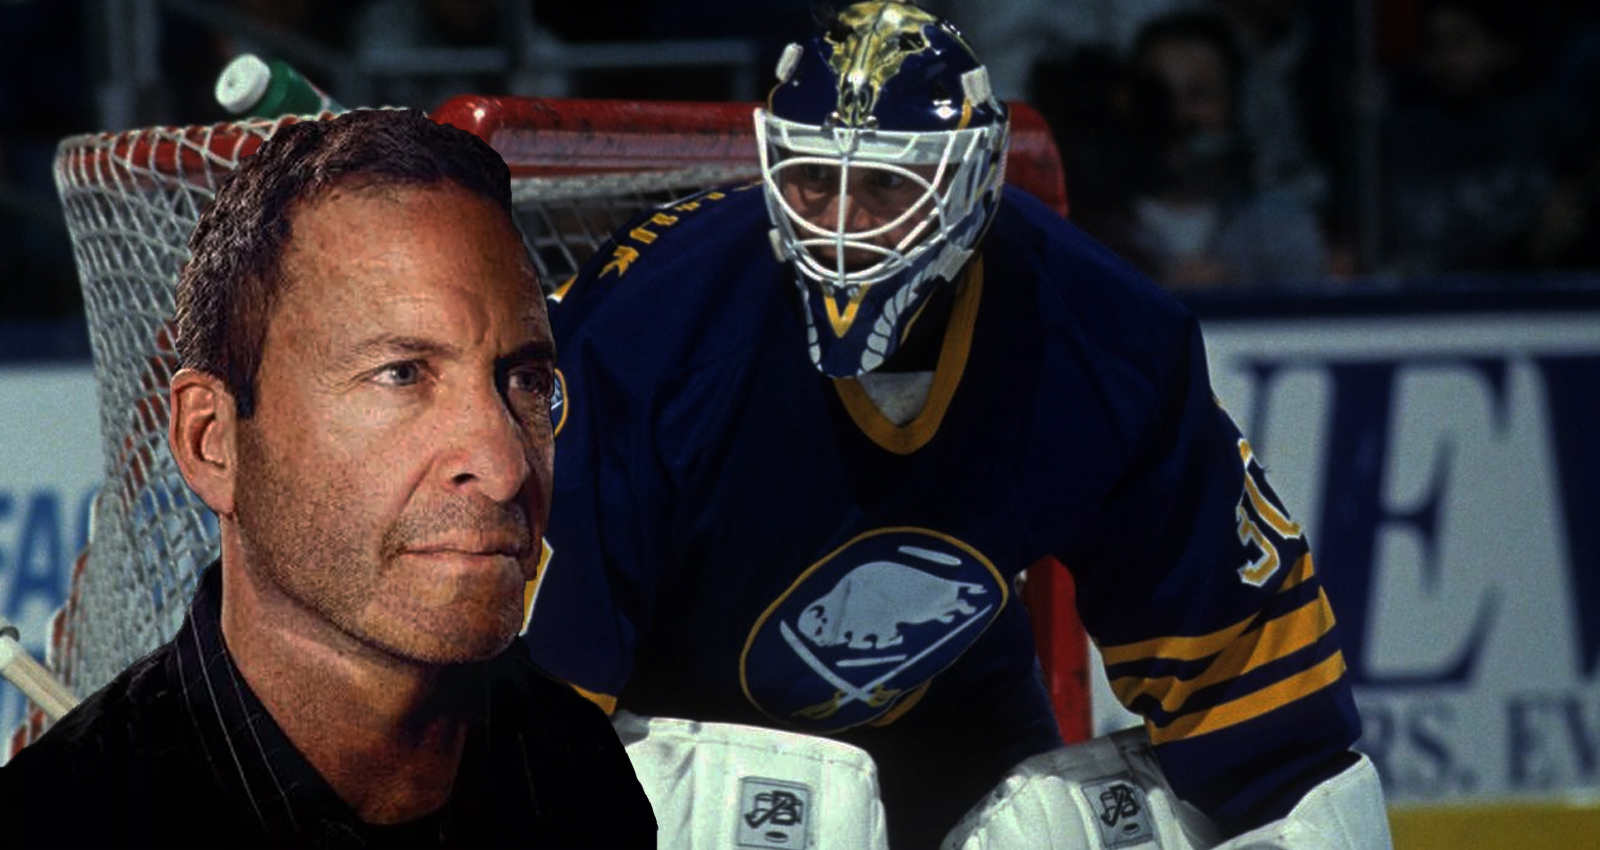 Clint Malarchuk On His Infamous Injury And Battling Depression